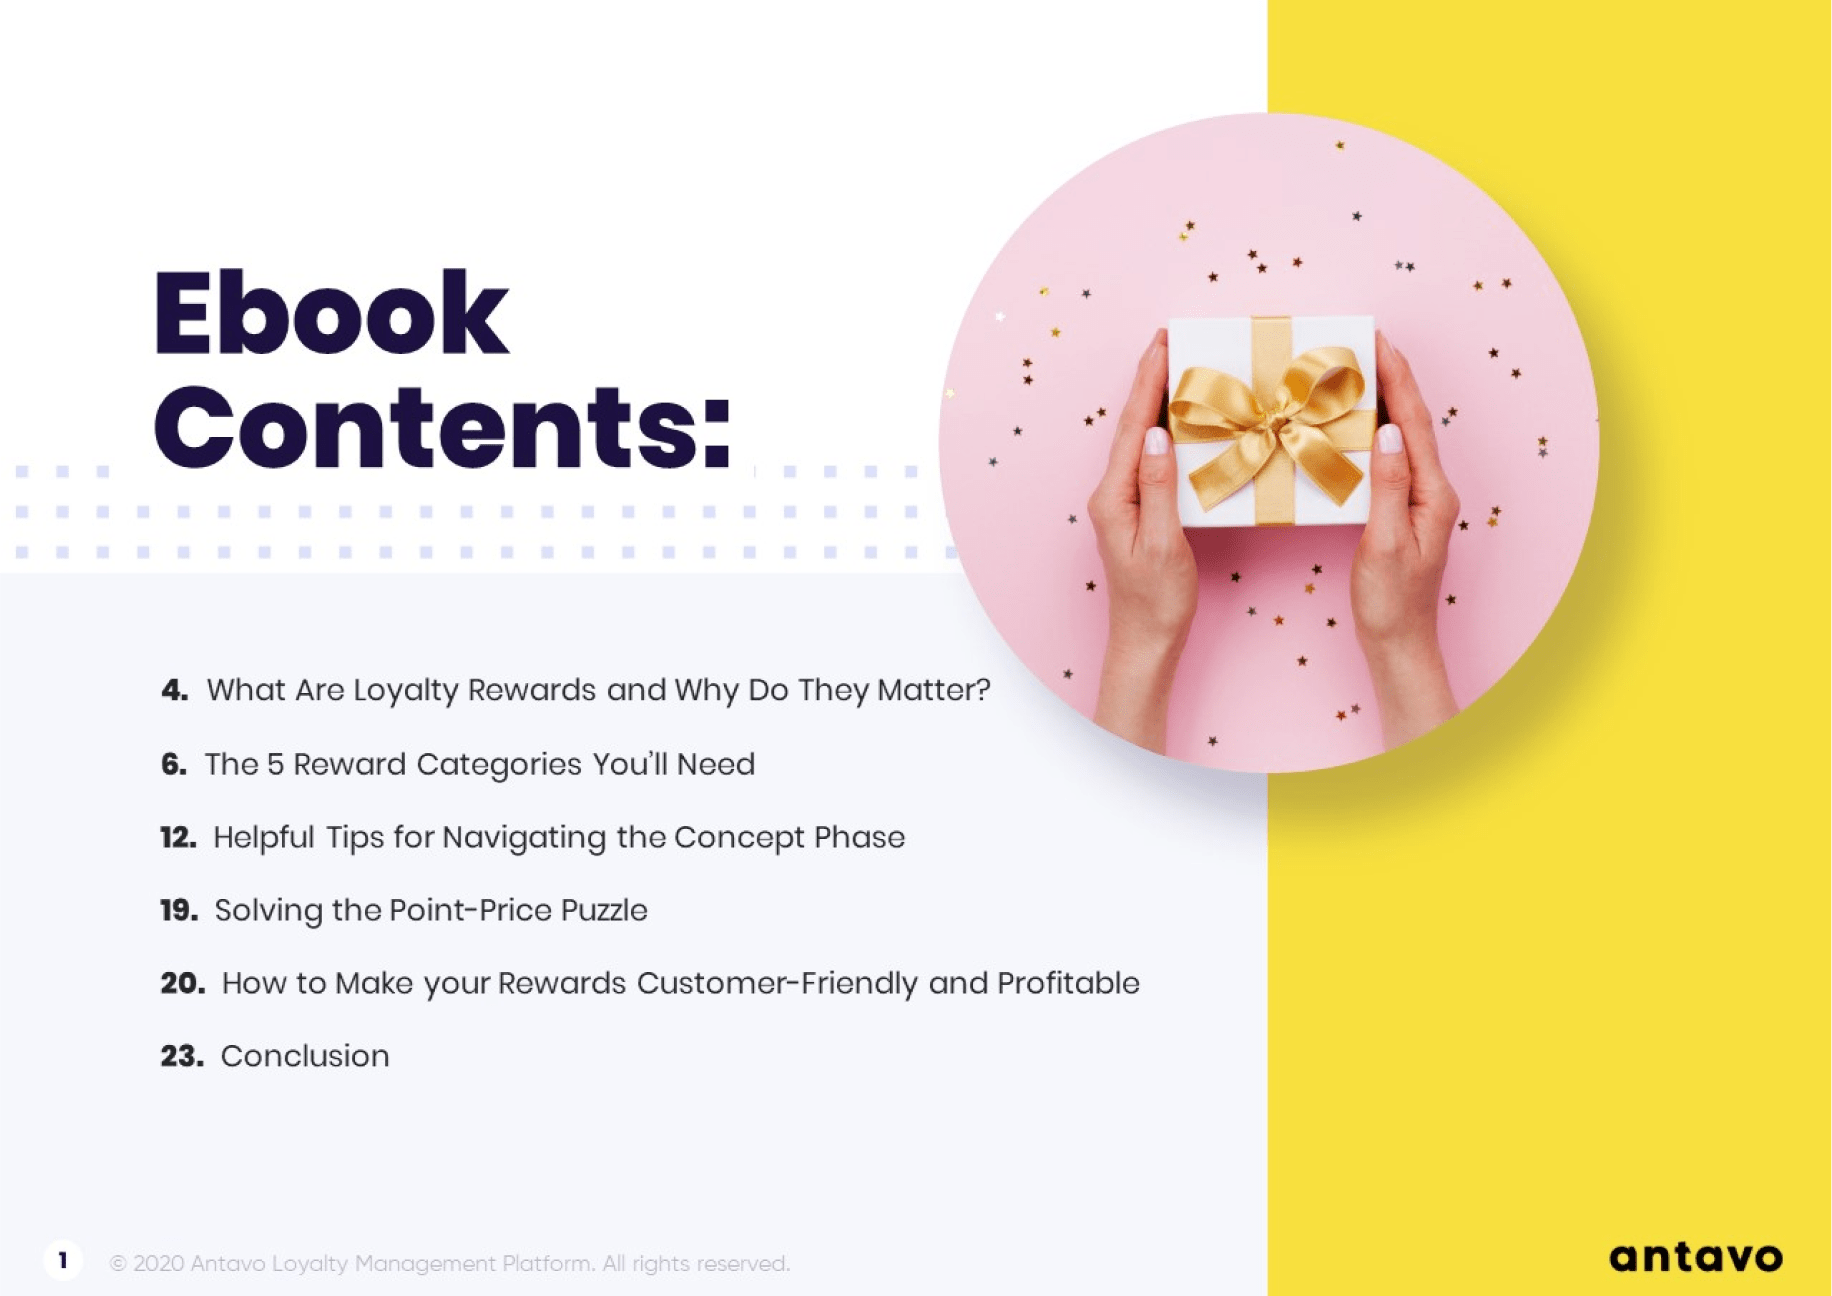 Take a look inside Antavo's Ebook: The Ultimate Guide to Loyalty Program Rewards.